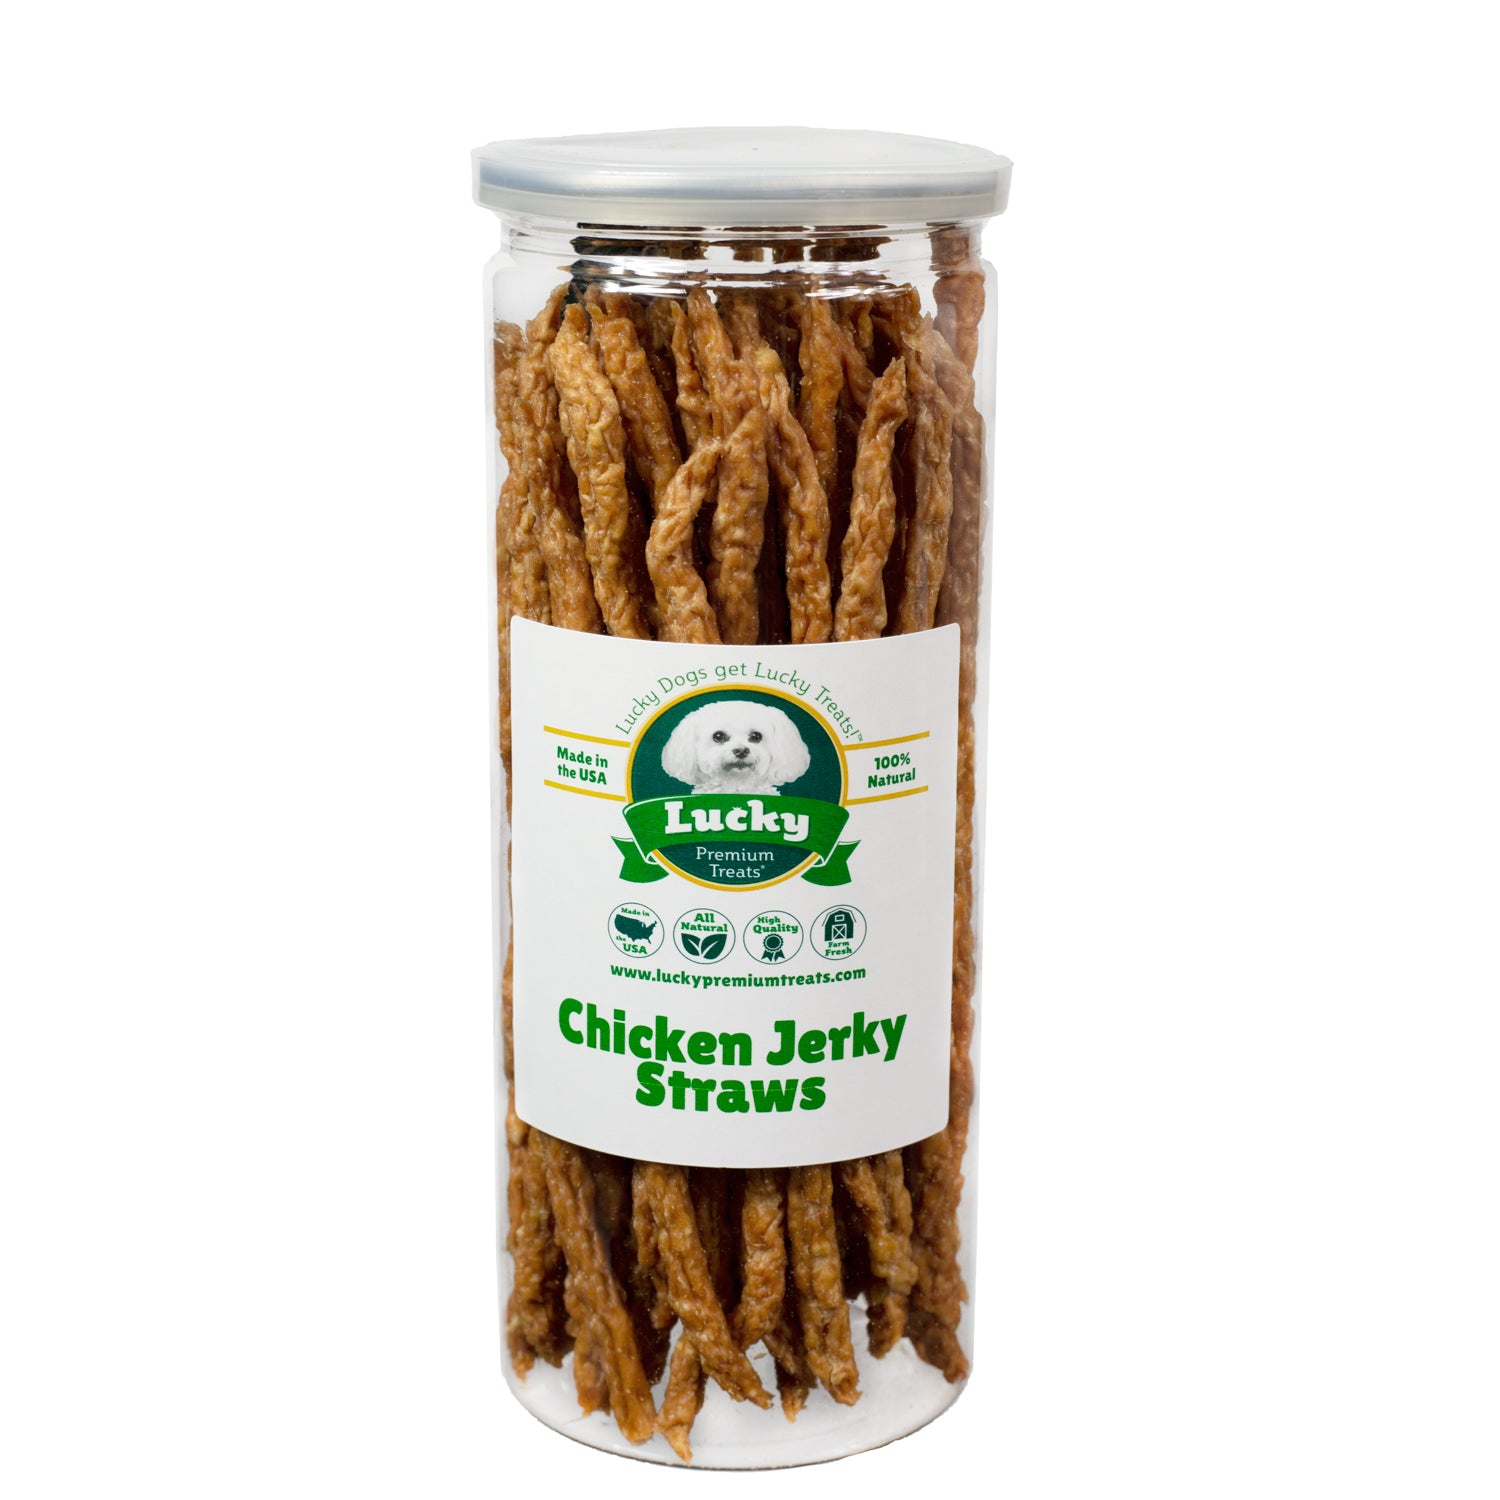 Chicken Jerky Straws